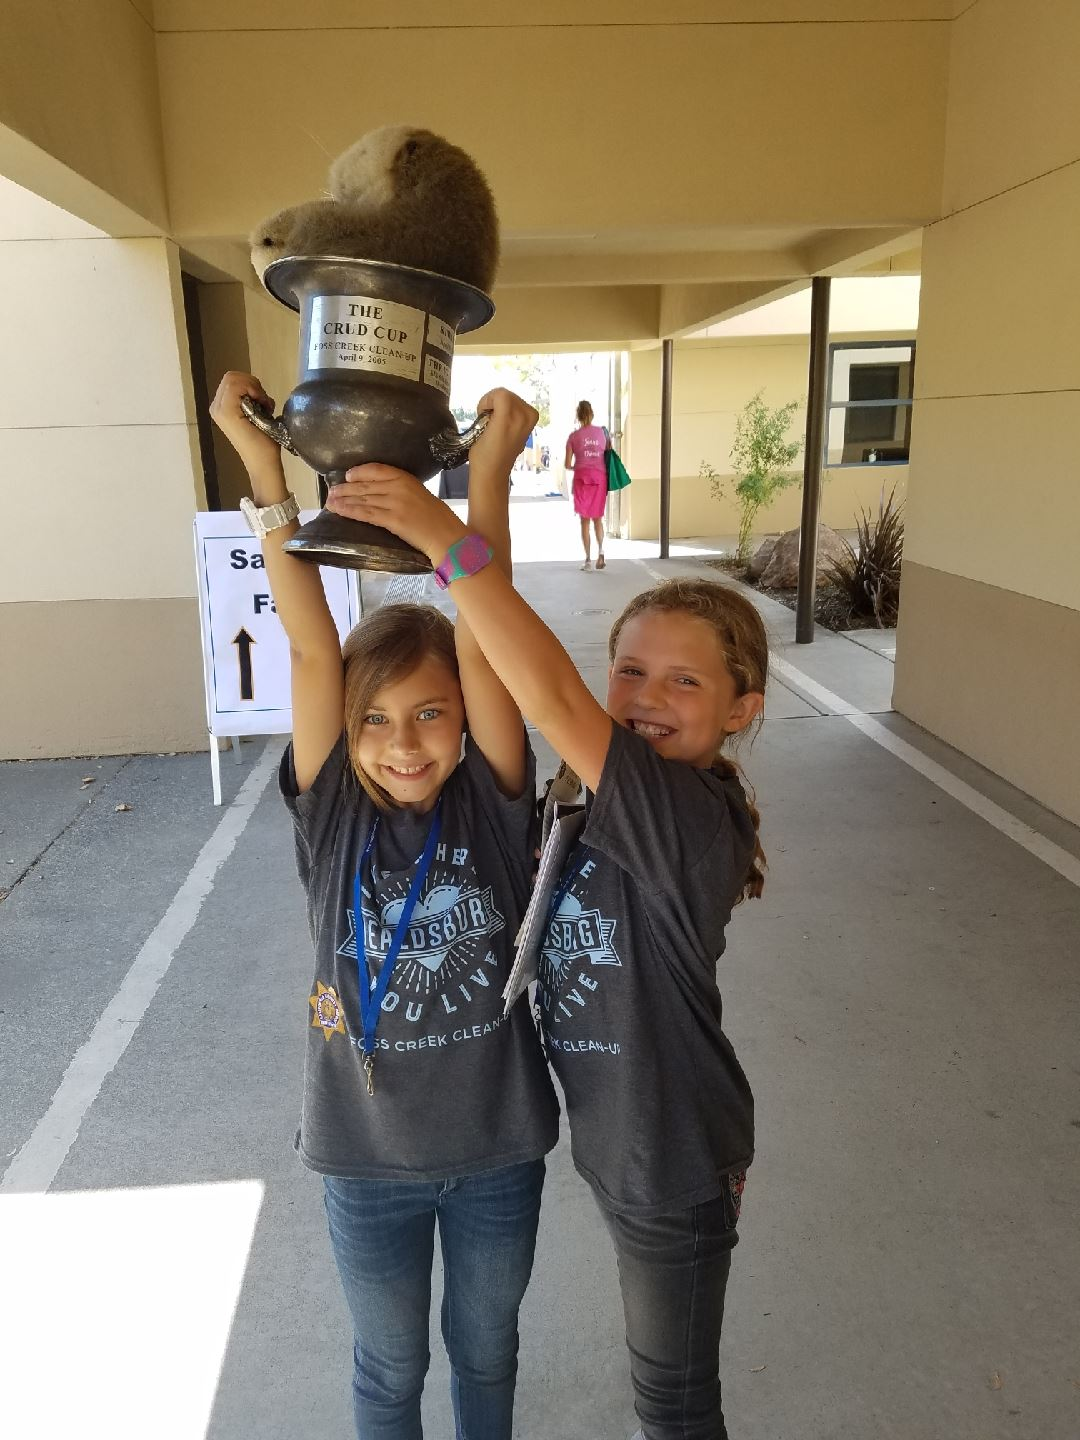 Girl Scout Troop - CrudCup